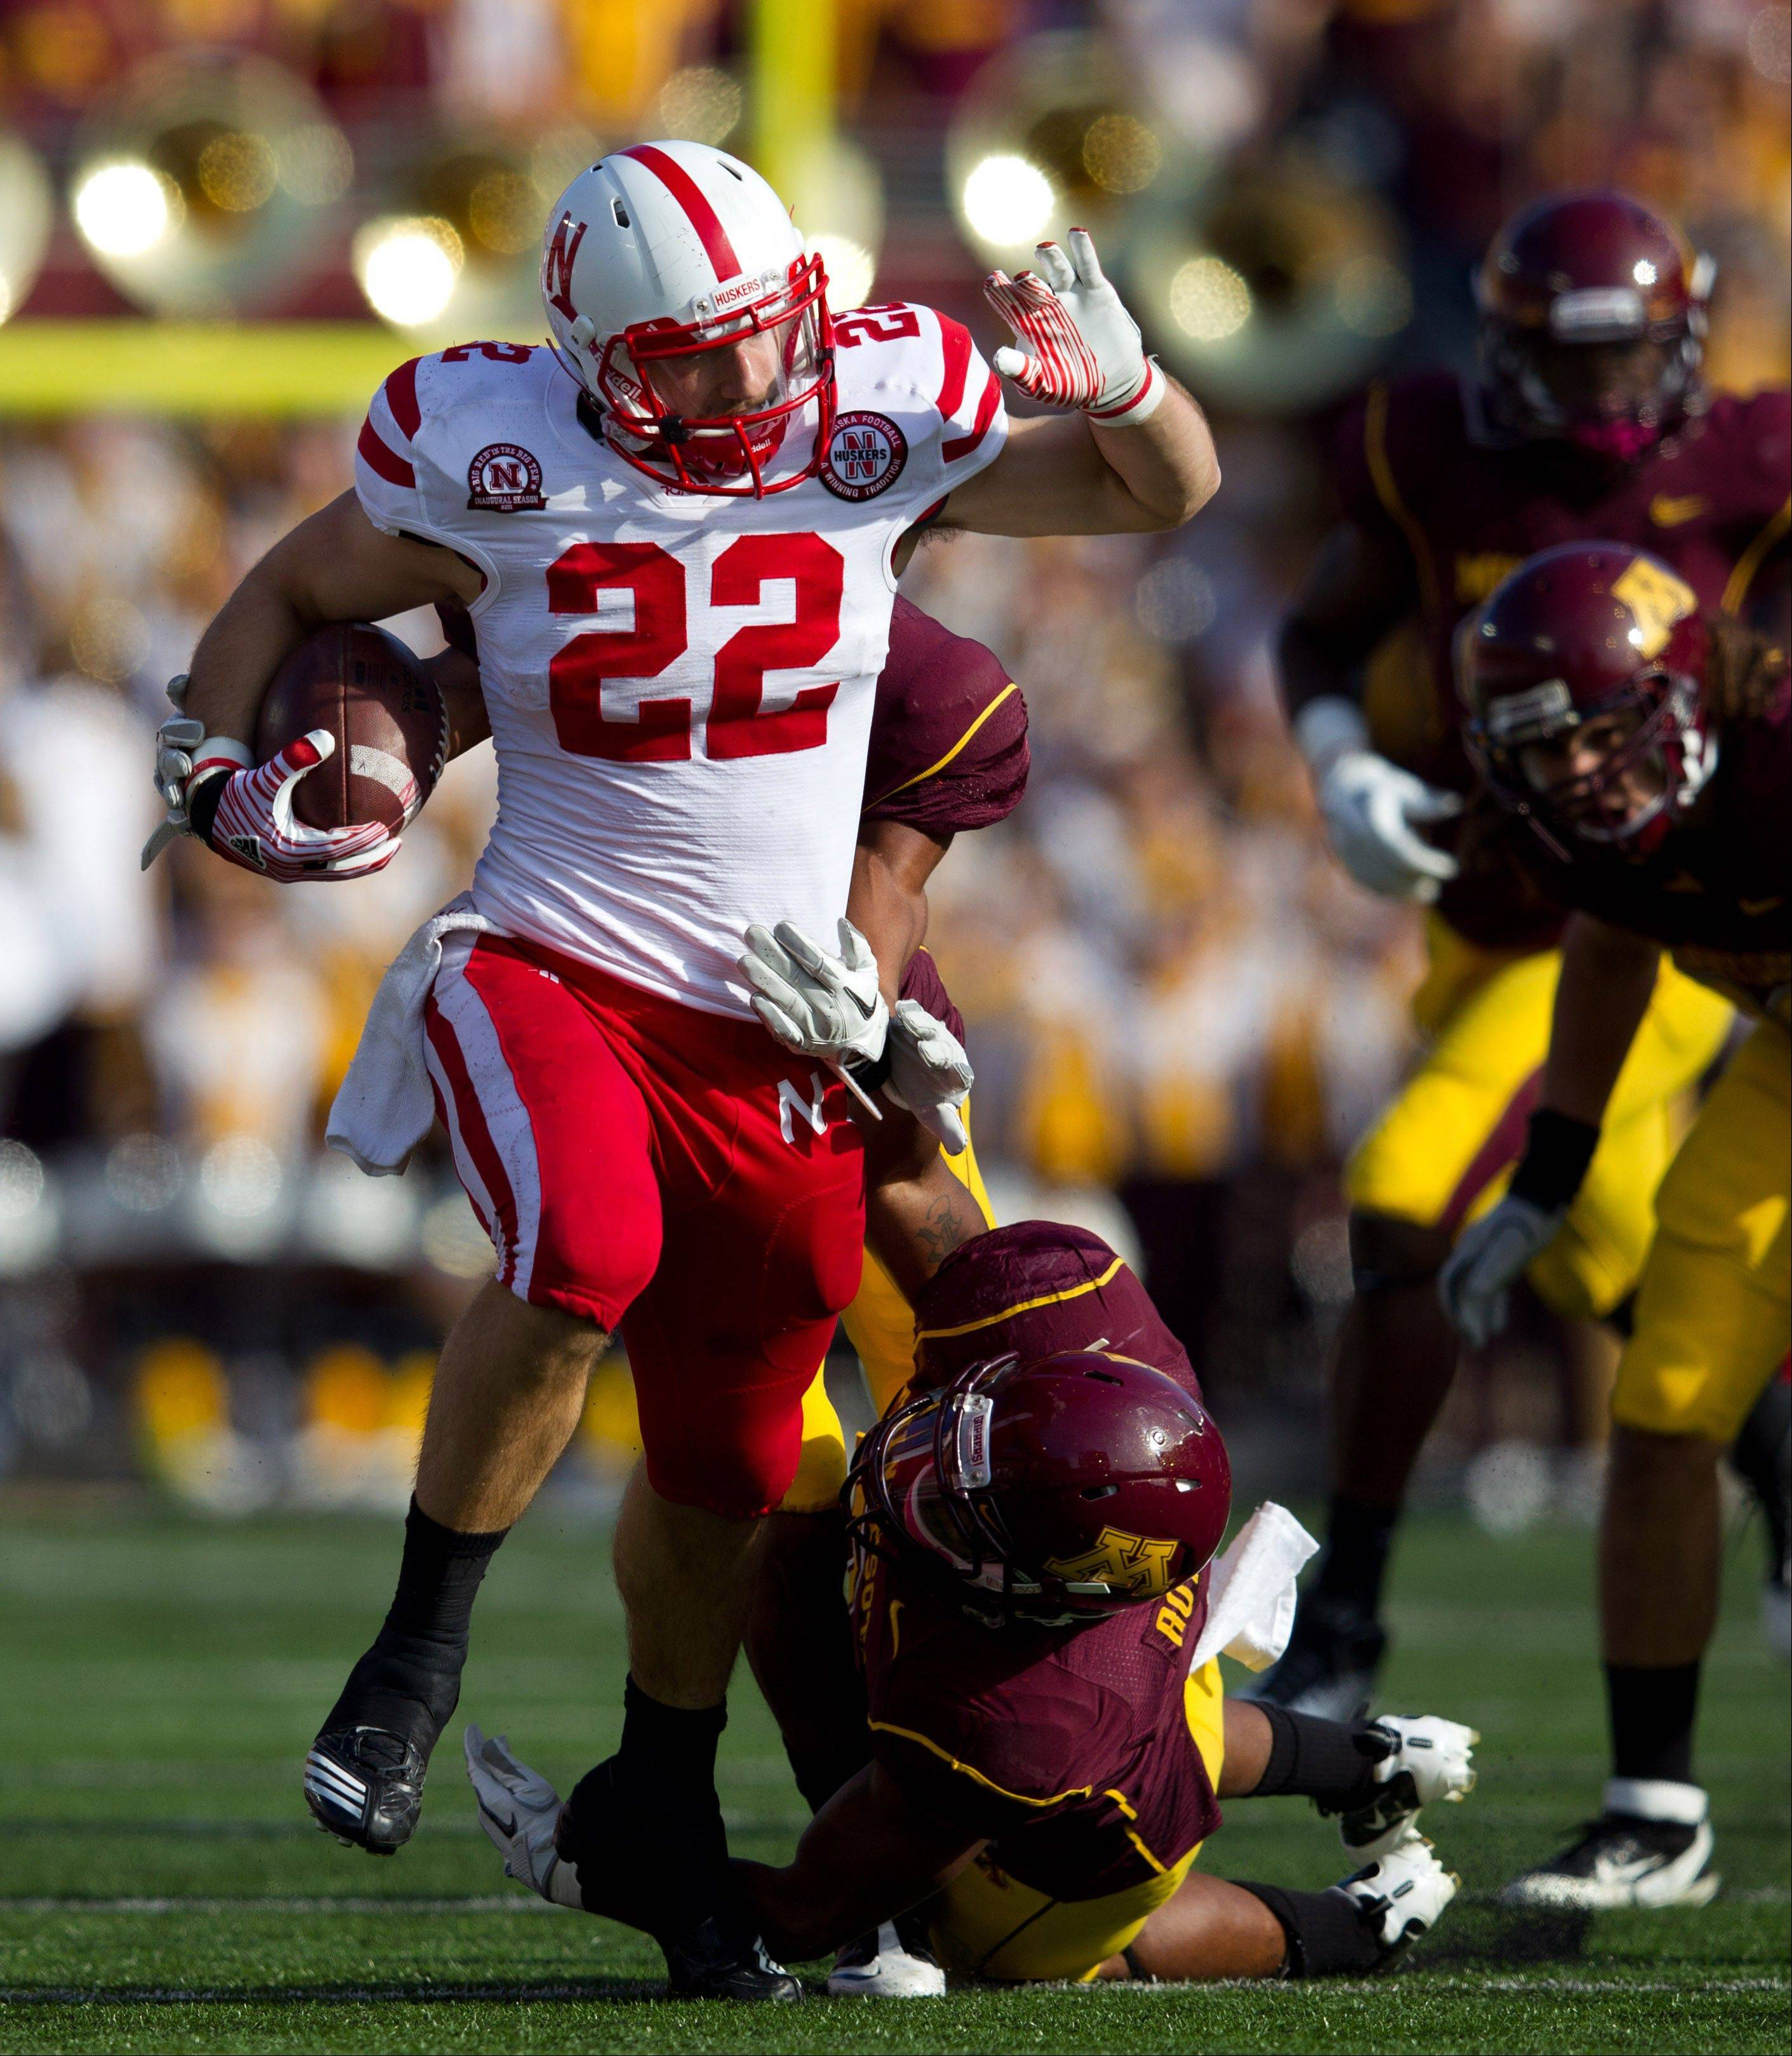 Nebraska running brack Rex Burkhead rumbles through the Minnesota defense as Gopher defender Kim Royston makes the tackle in Minneapolis. Burkhead injured his knee in the Huskers� first game and has missed five games this season and left early three other games.